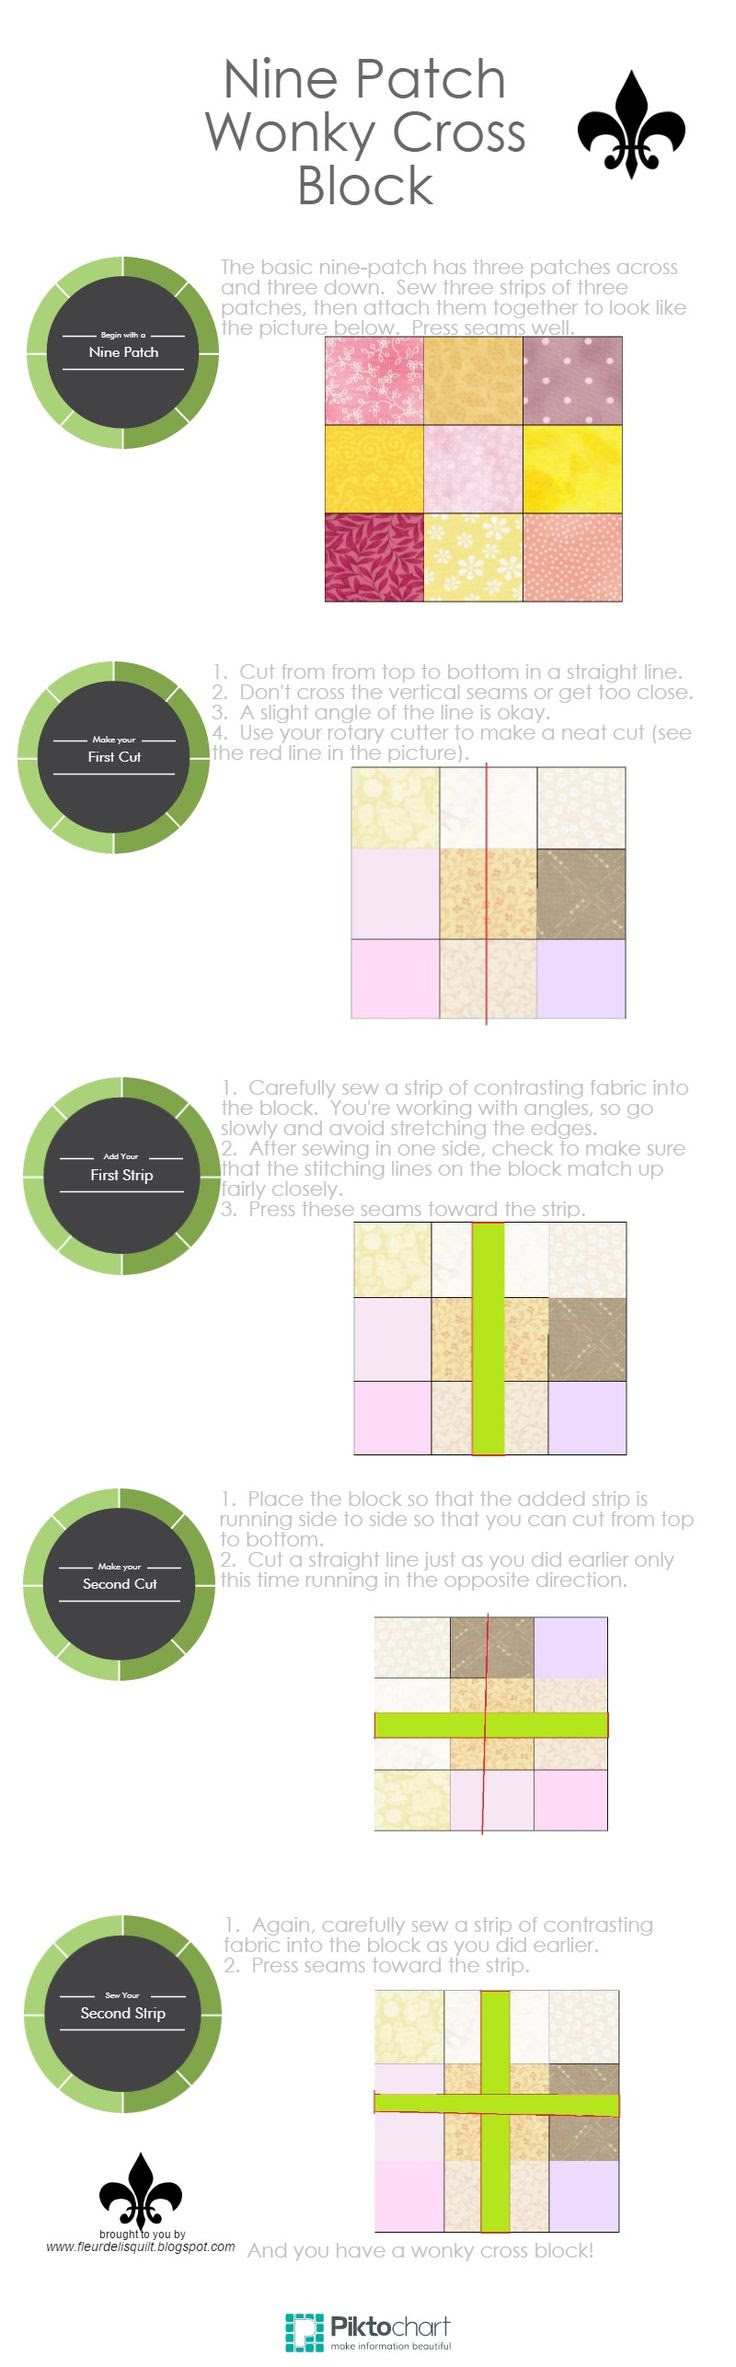 Nine Patch Wonky Cross Block | Piktochart Infographic Editor